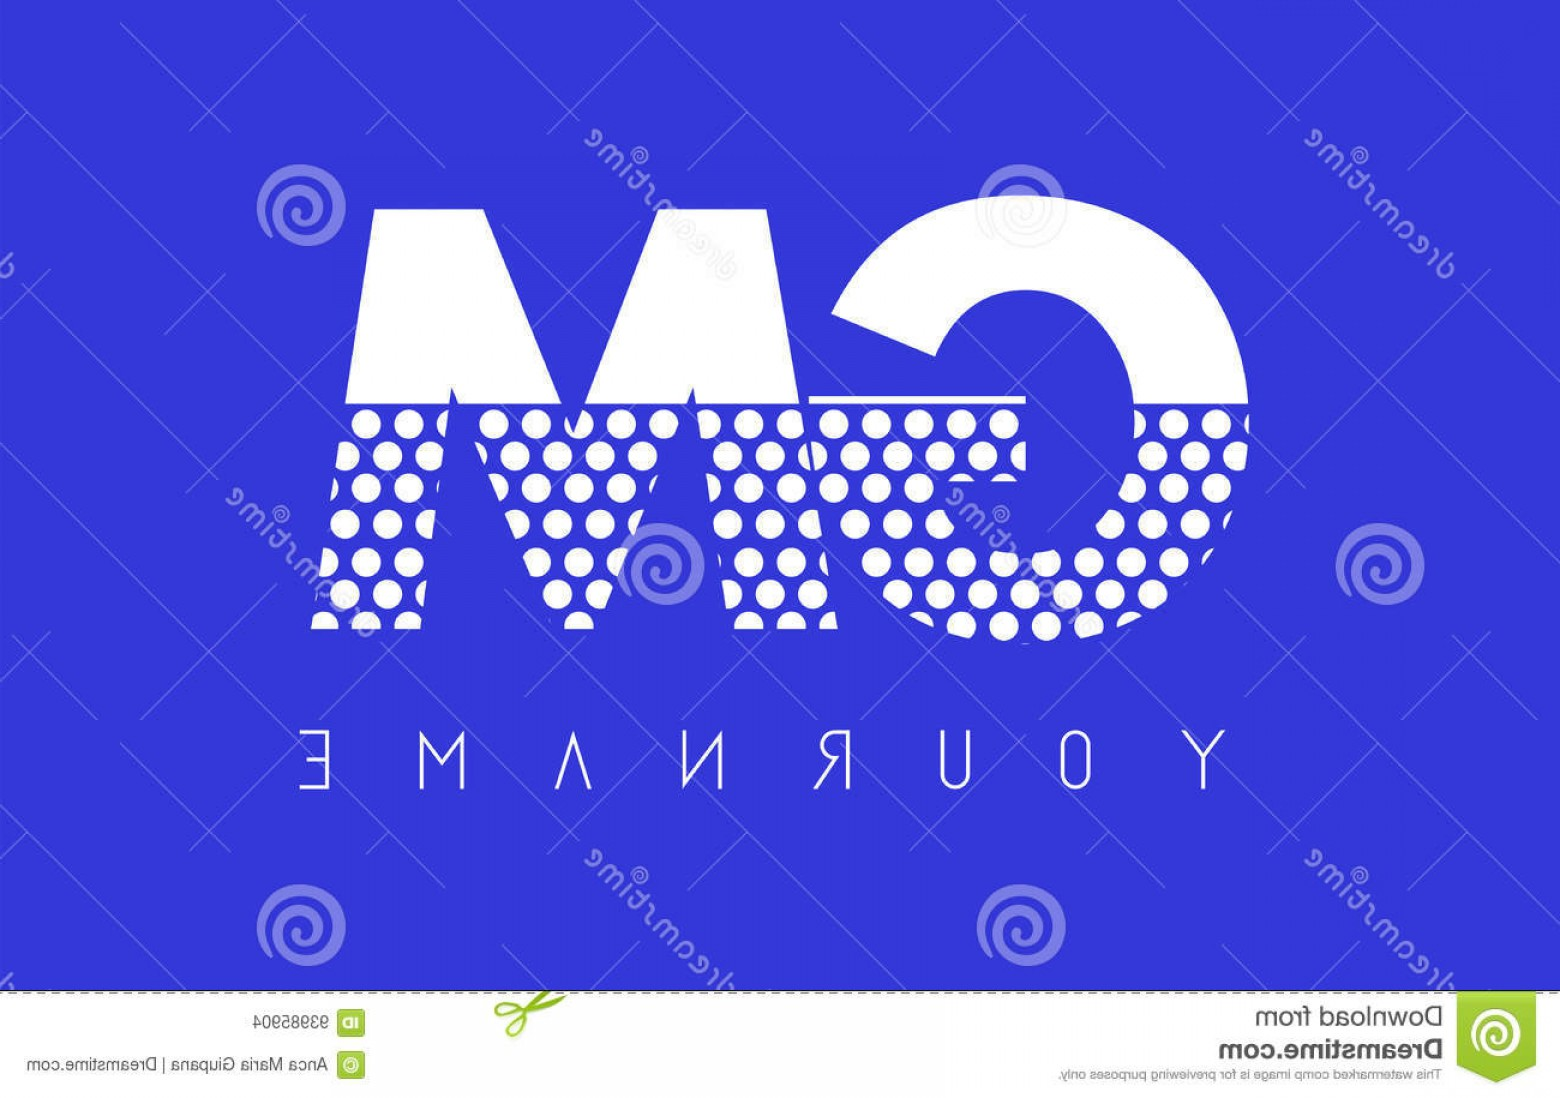 GM Logo Vector: Stock Illustration Gm G M Dotted Letter Logo Design Blue Background Pattern Vector Image